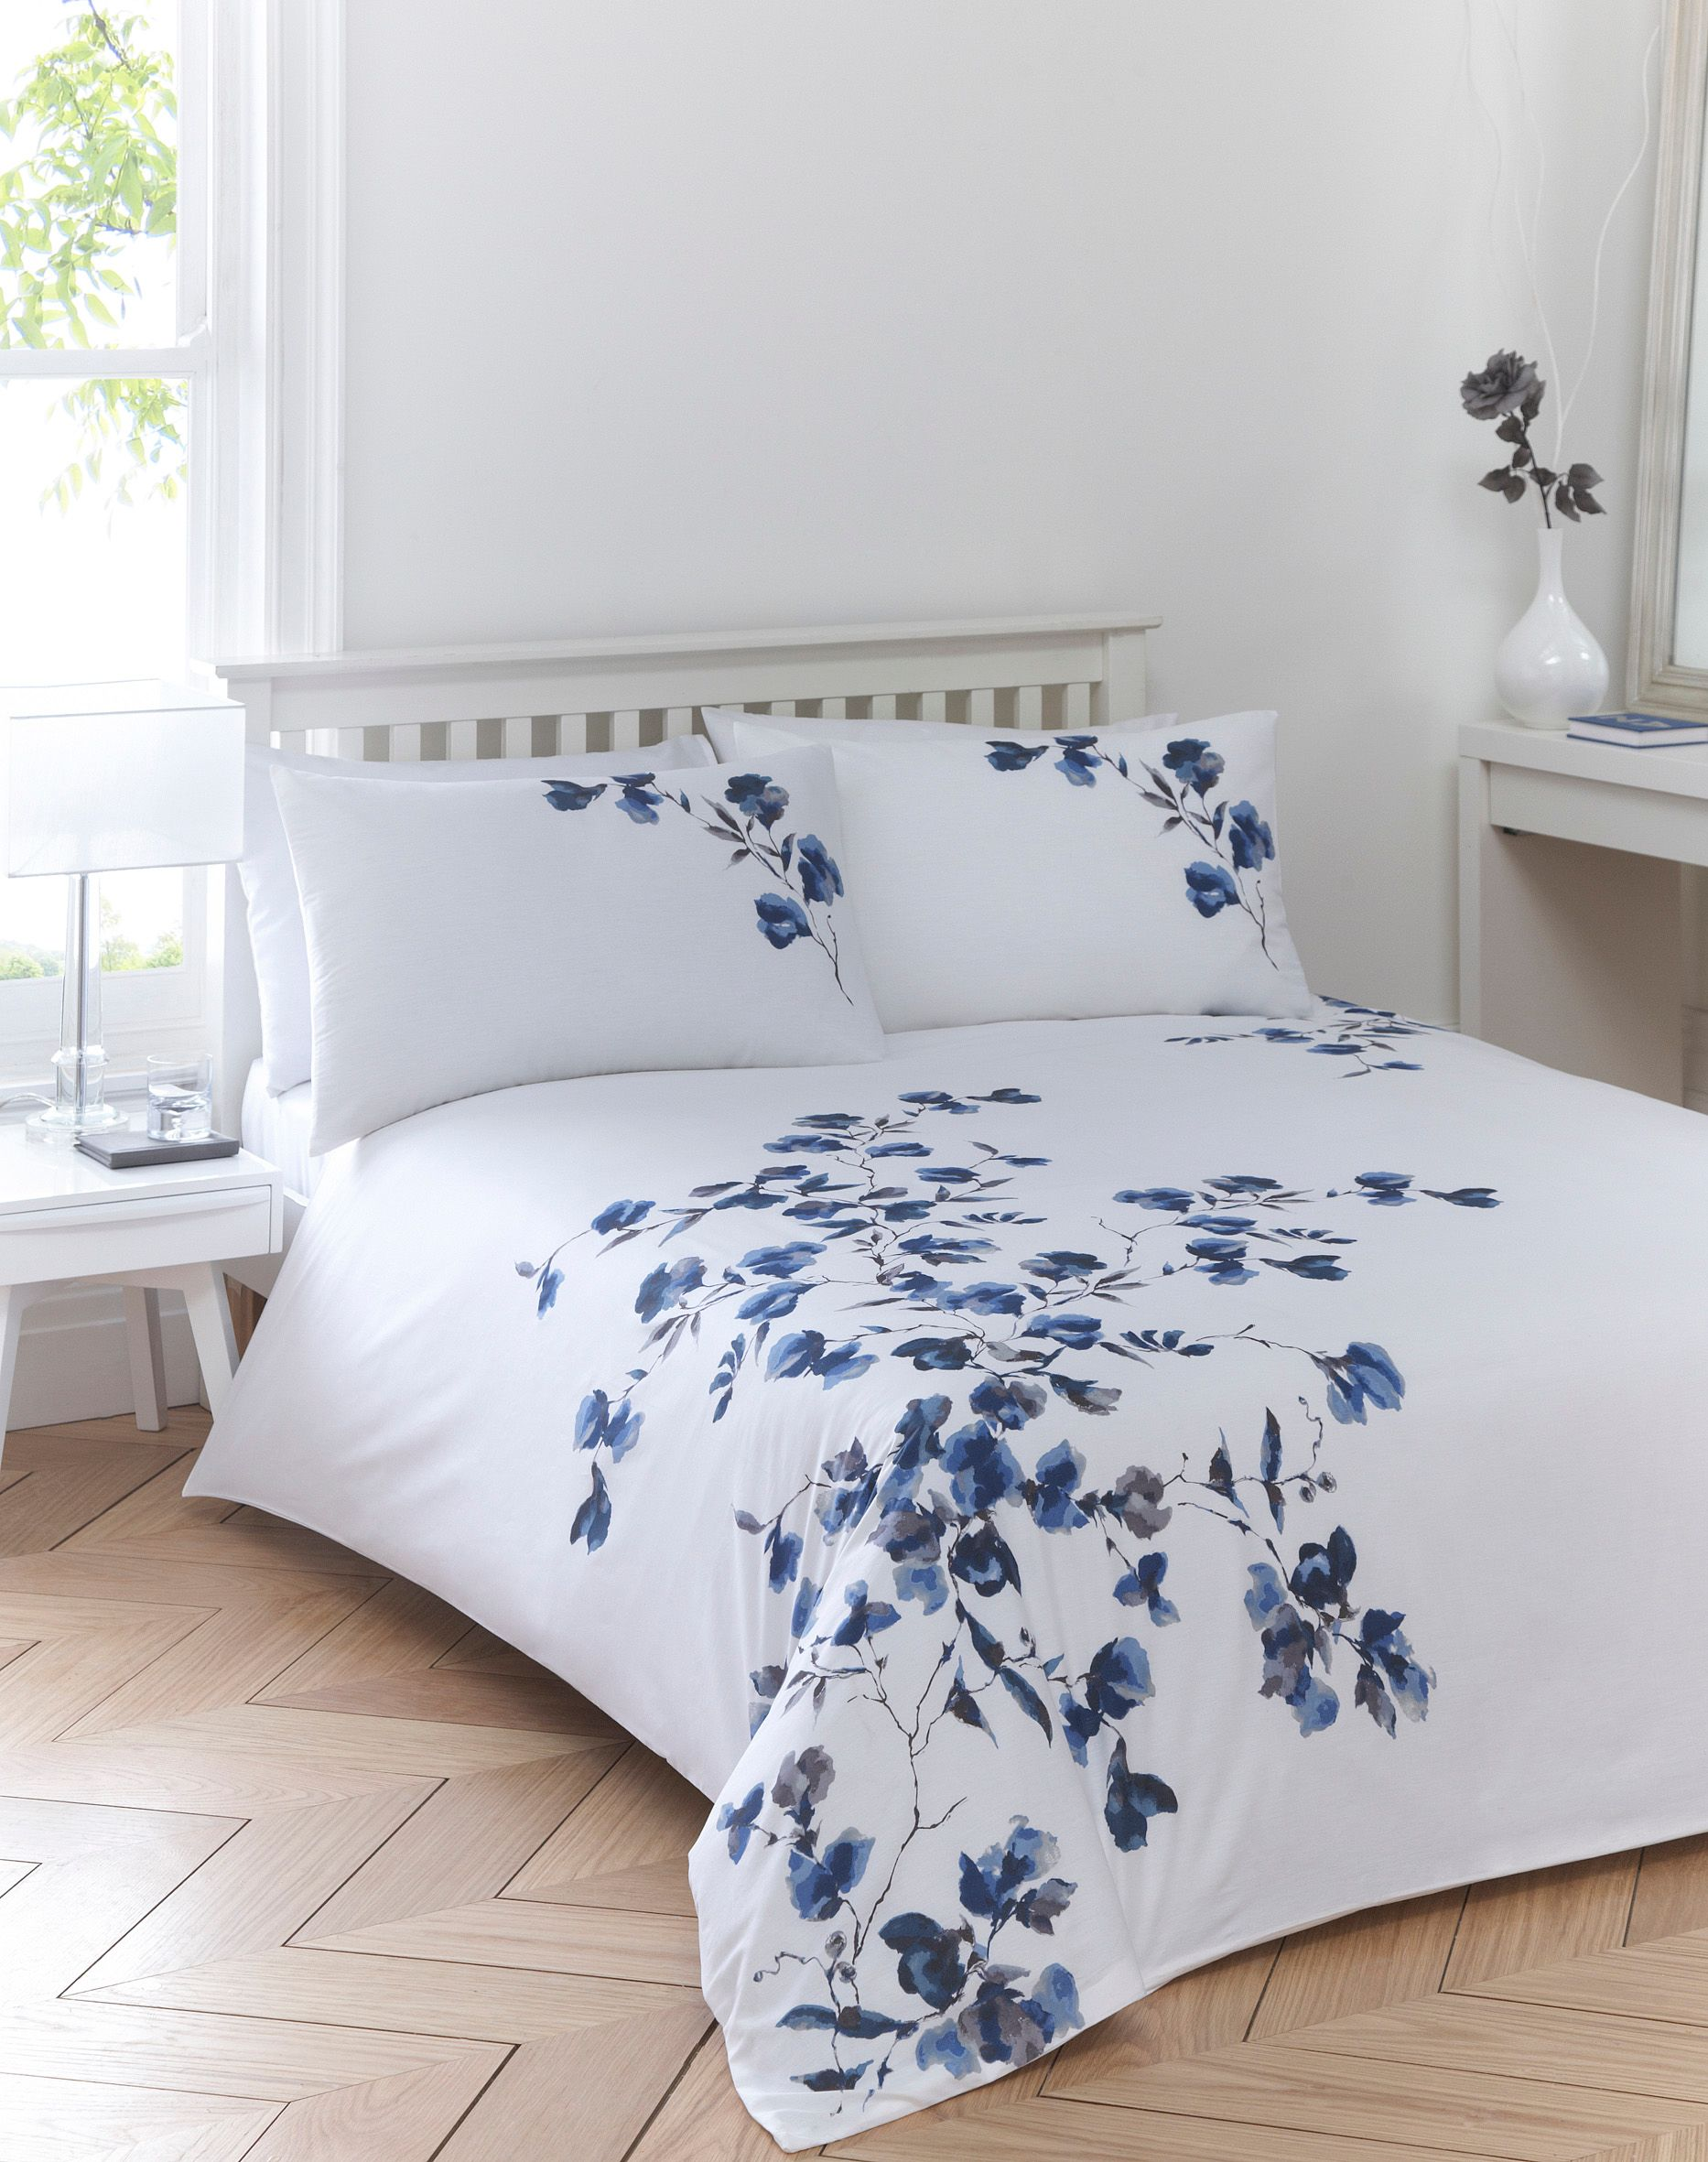 Floral Cascade double duvet cover set